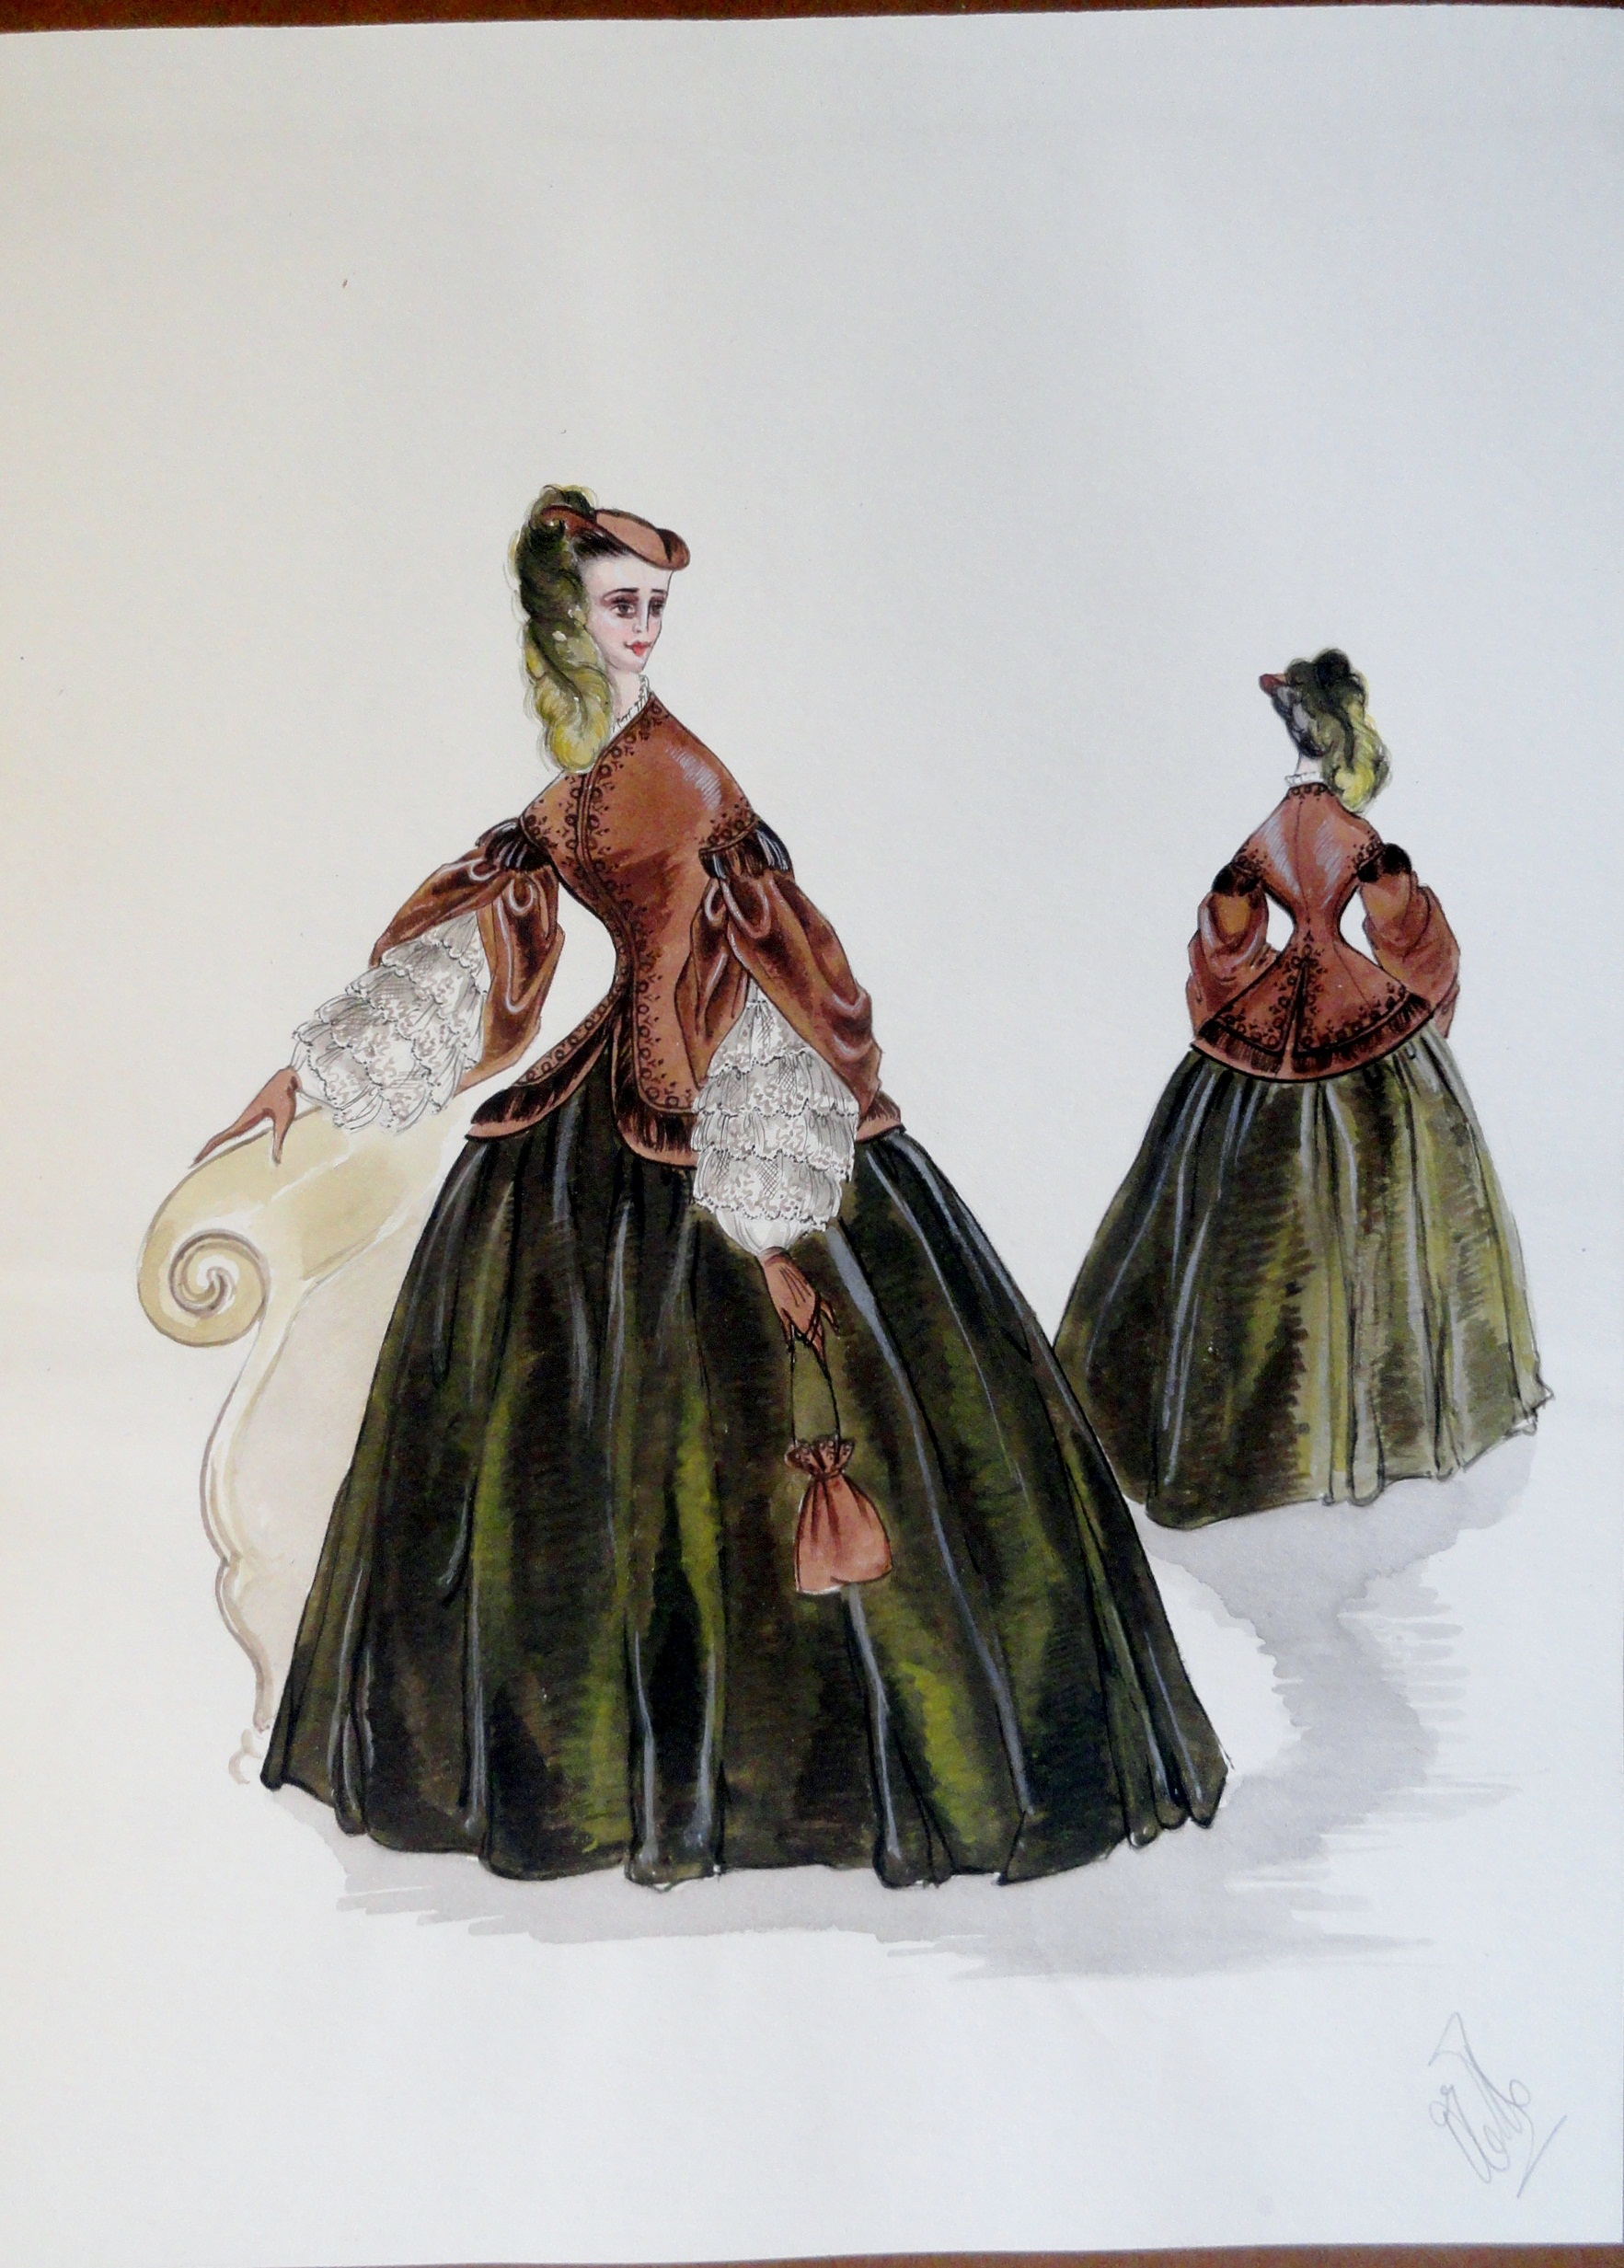 Rachel long green and brown dress with lace sleeves. Pen and ink and gouche. signed.  from the Rachel Portfolio by Owen Hyde Clark. $400.00.